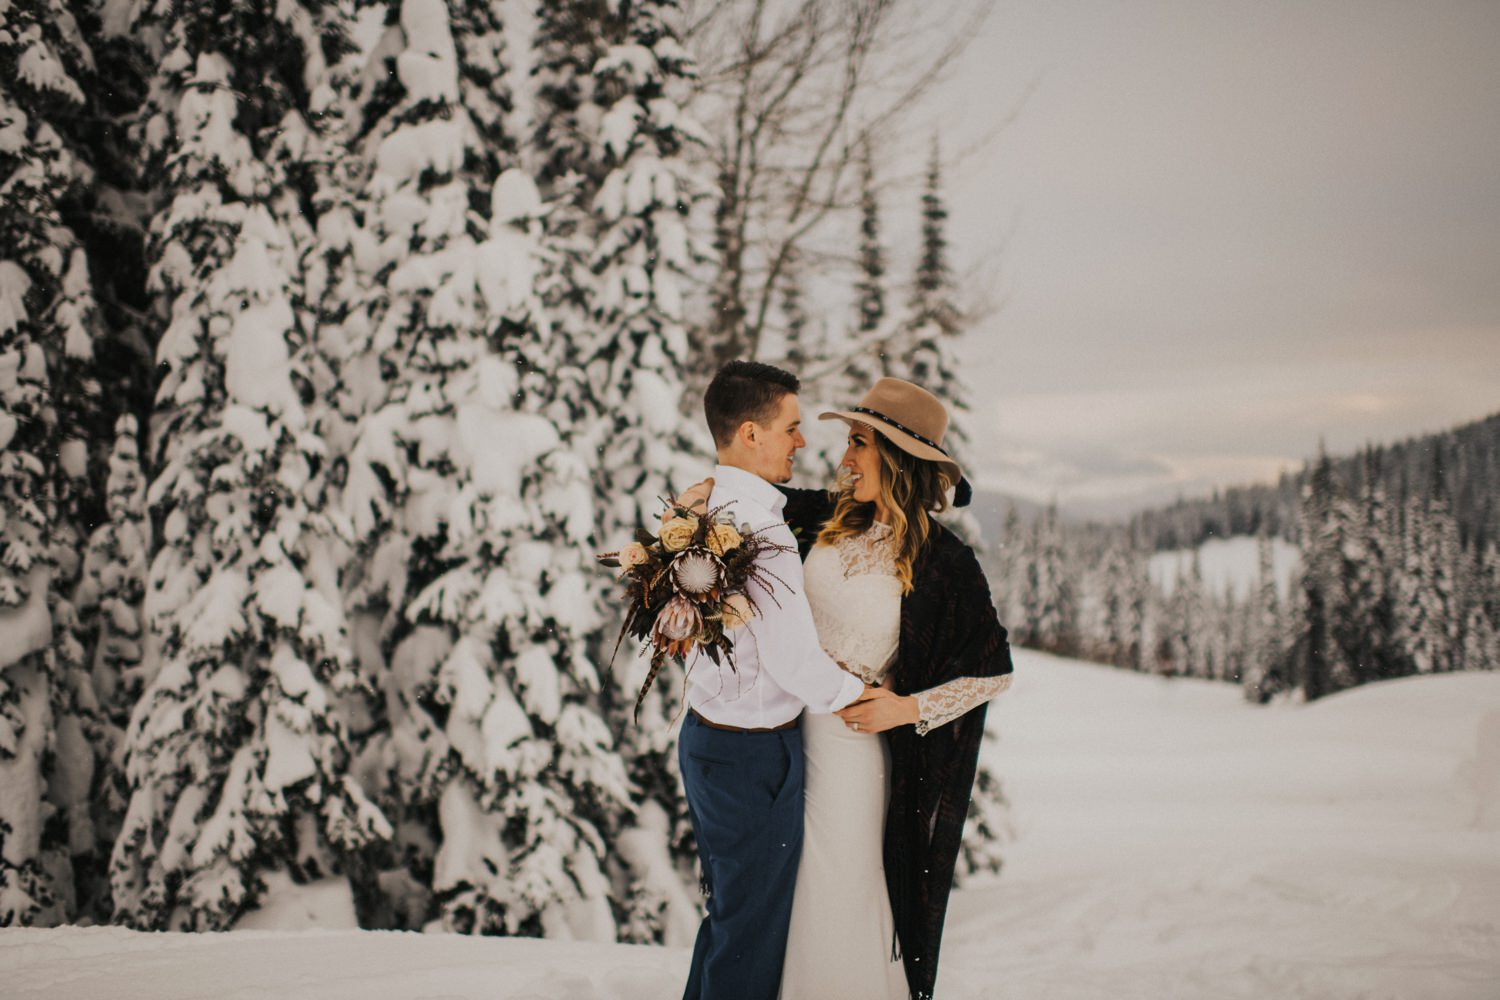 Okanagan Winter Elopement - Joelsview Photography_0104